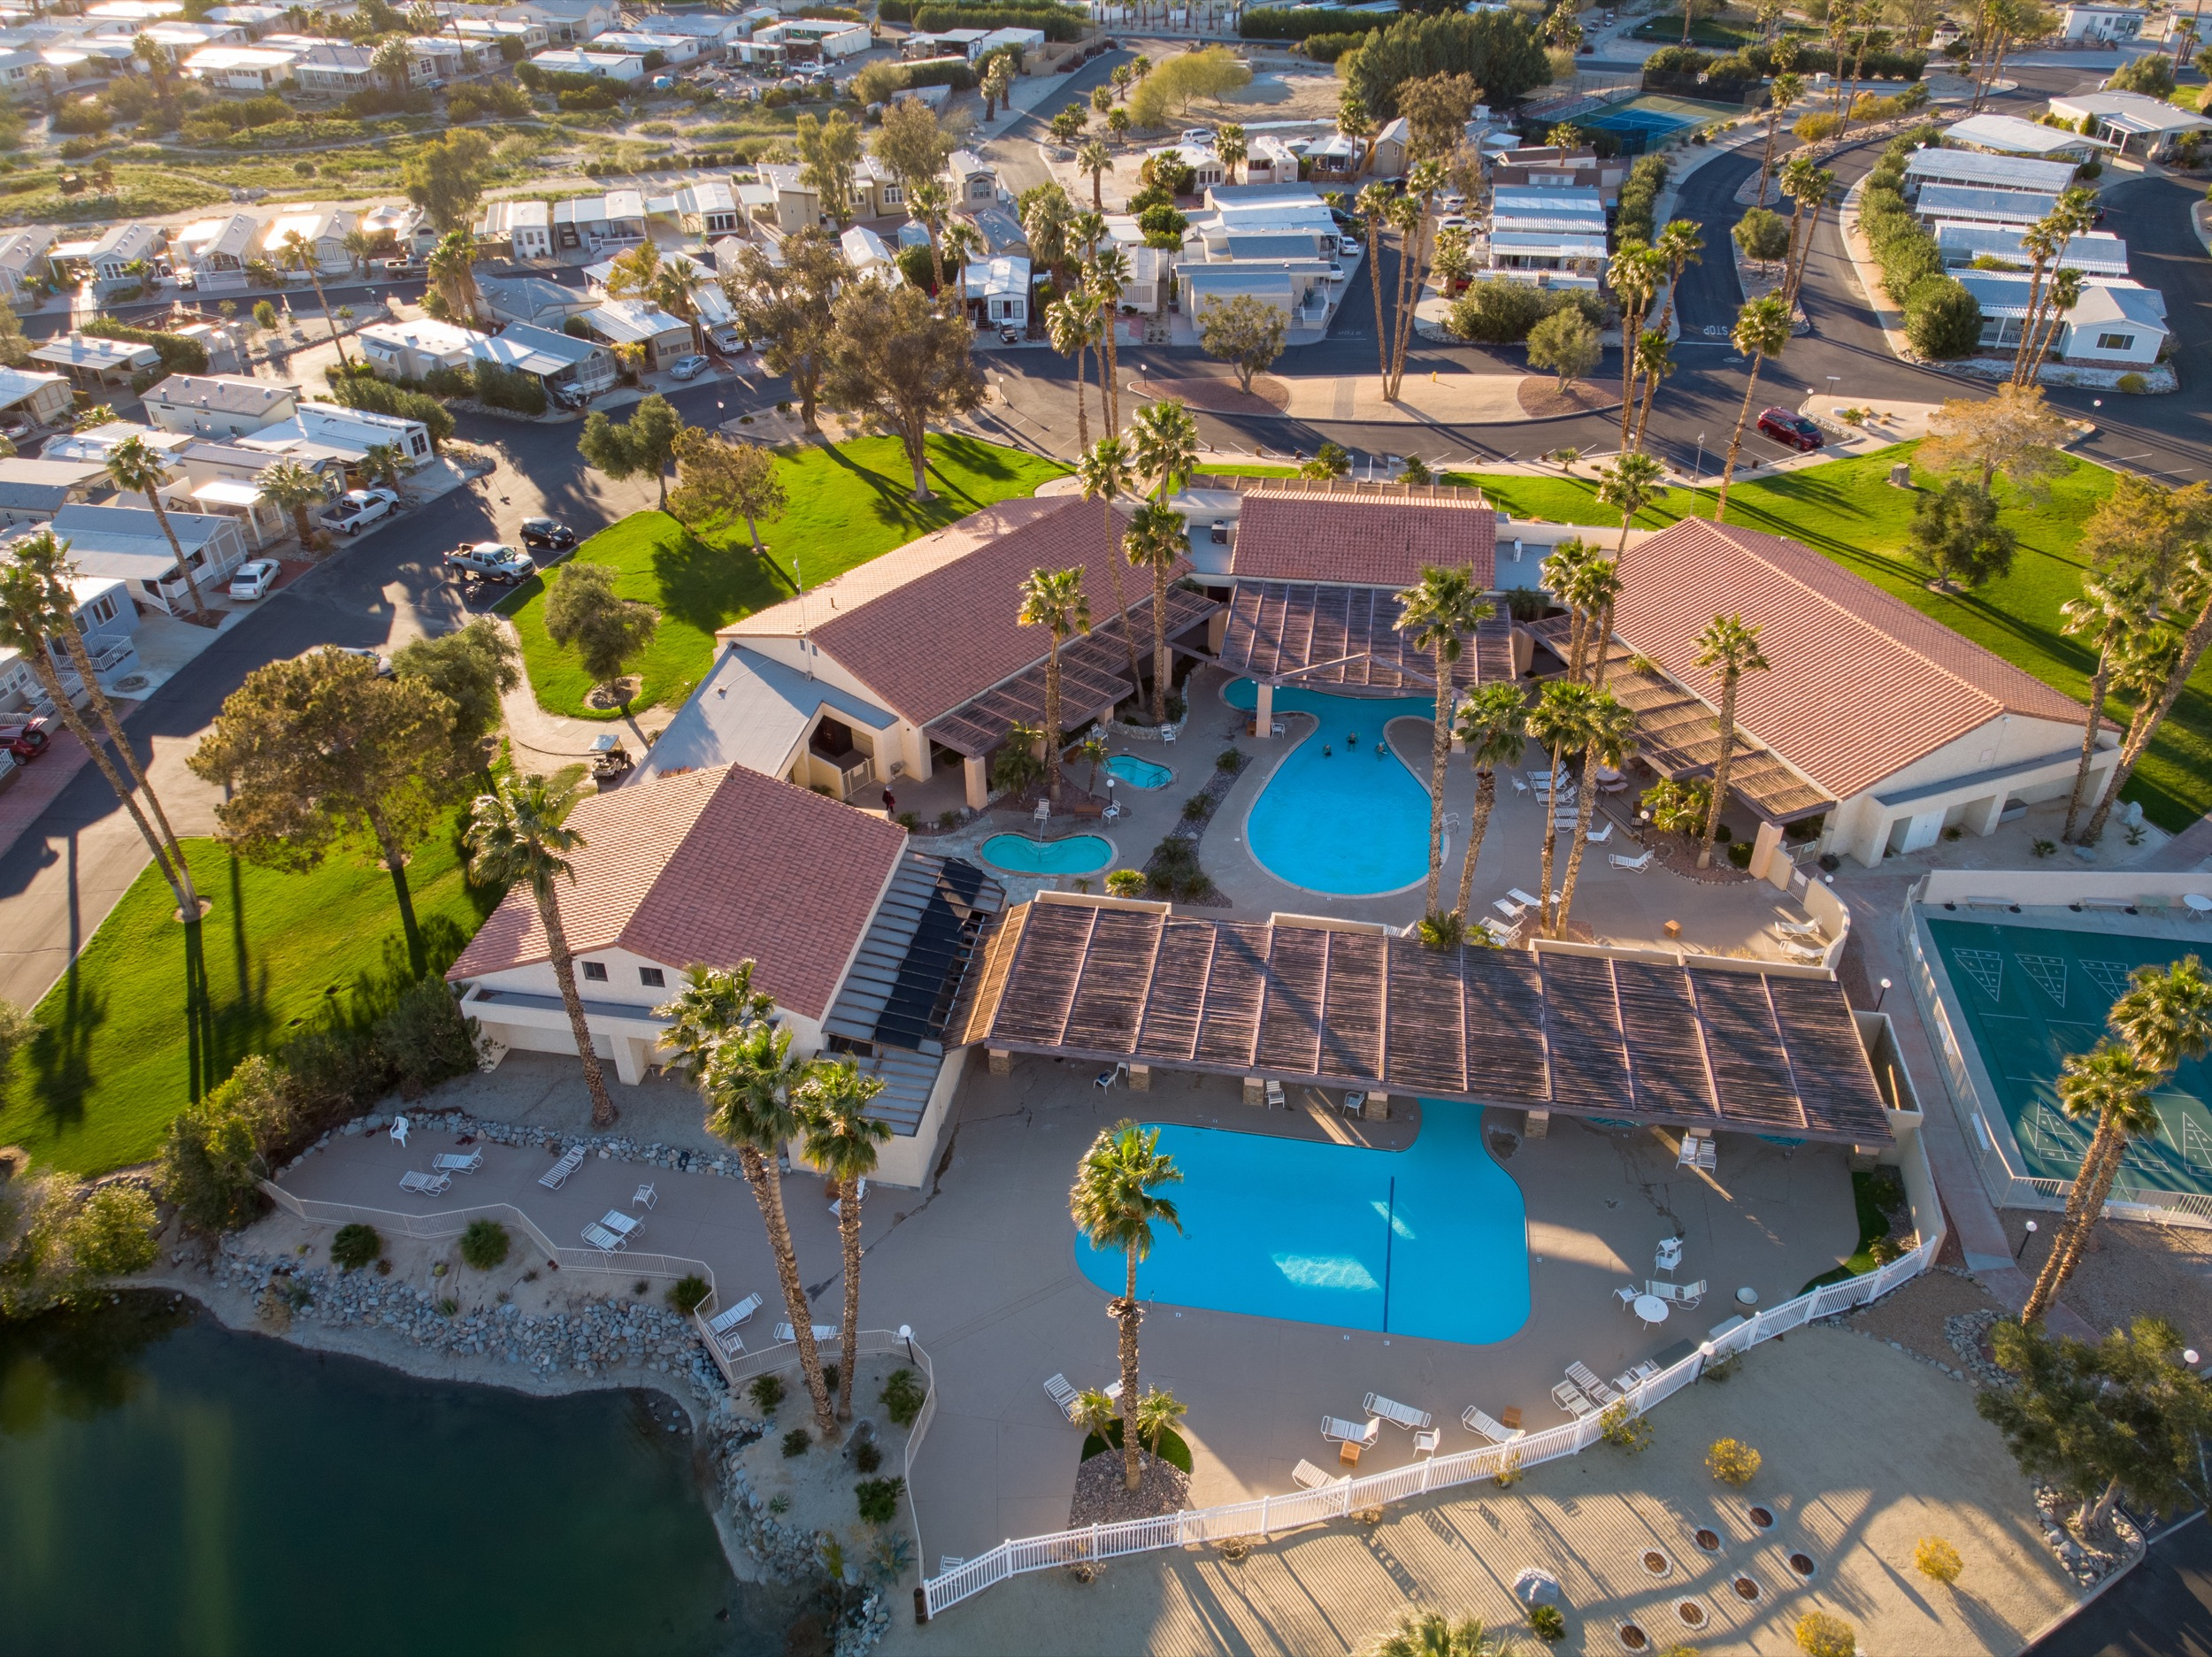 RESORT AMENITIES - HOT MINERAL POOLS AND SPASTWO CLUBHOUSE LOCATIONSSTATE-OF-THE-ART PICKLEBALL FACILITYFITNESS AND CARDIO ROOMSDOG PARKSTENNIS COURTSWALKING TRAILSHORSESHOES AND BOCCEGAME ROOMON SITE RESTAURANT